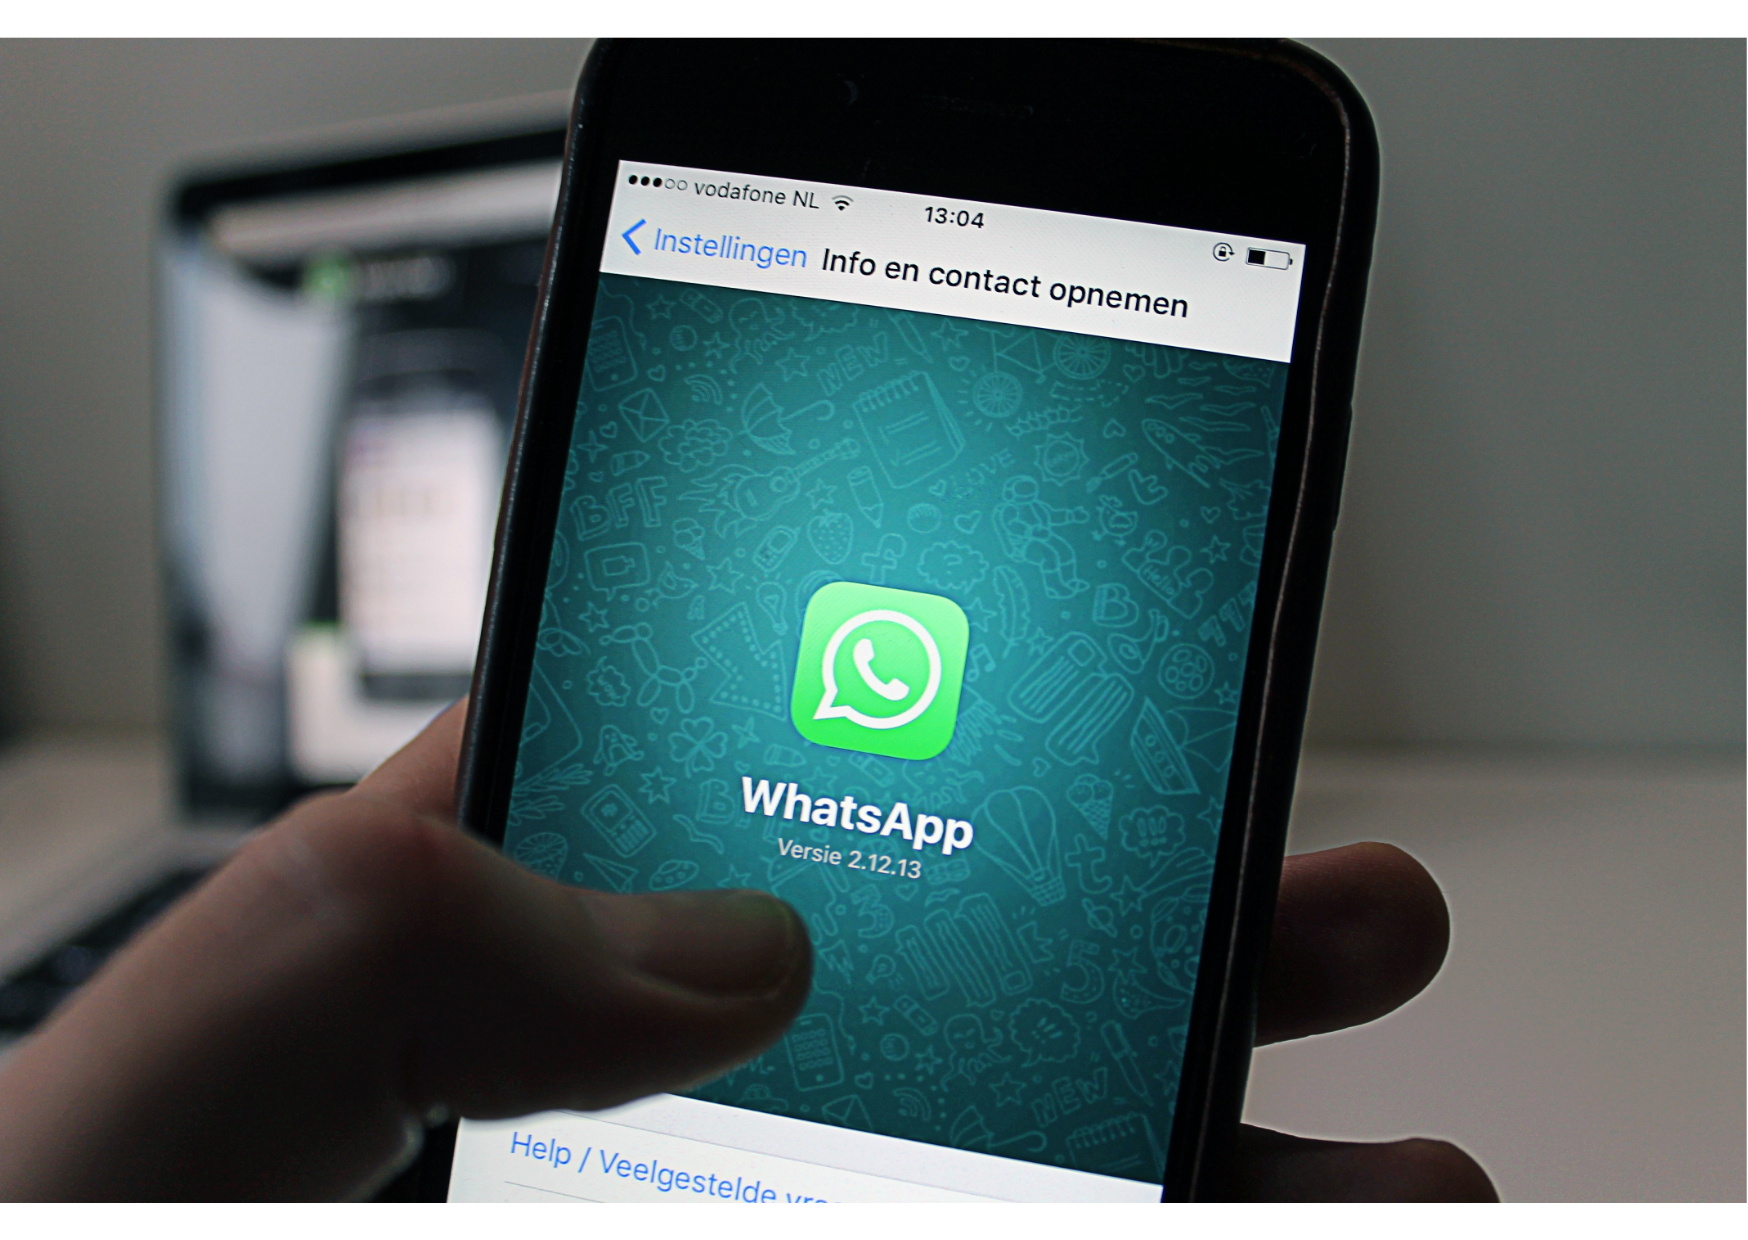 Why WhatsApp is one of the best helpdesk channels?